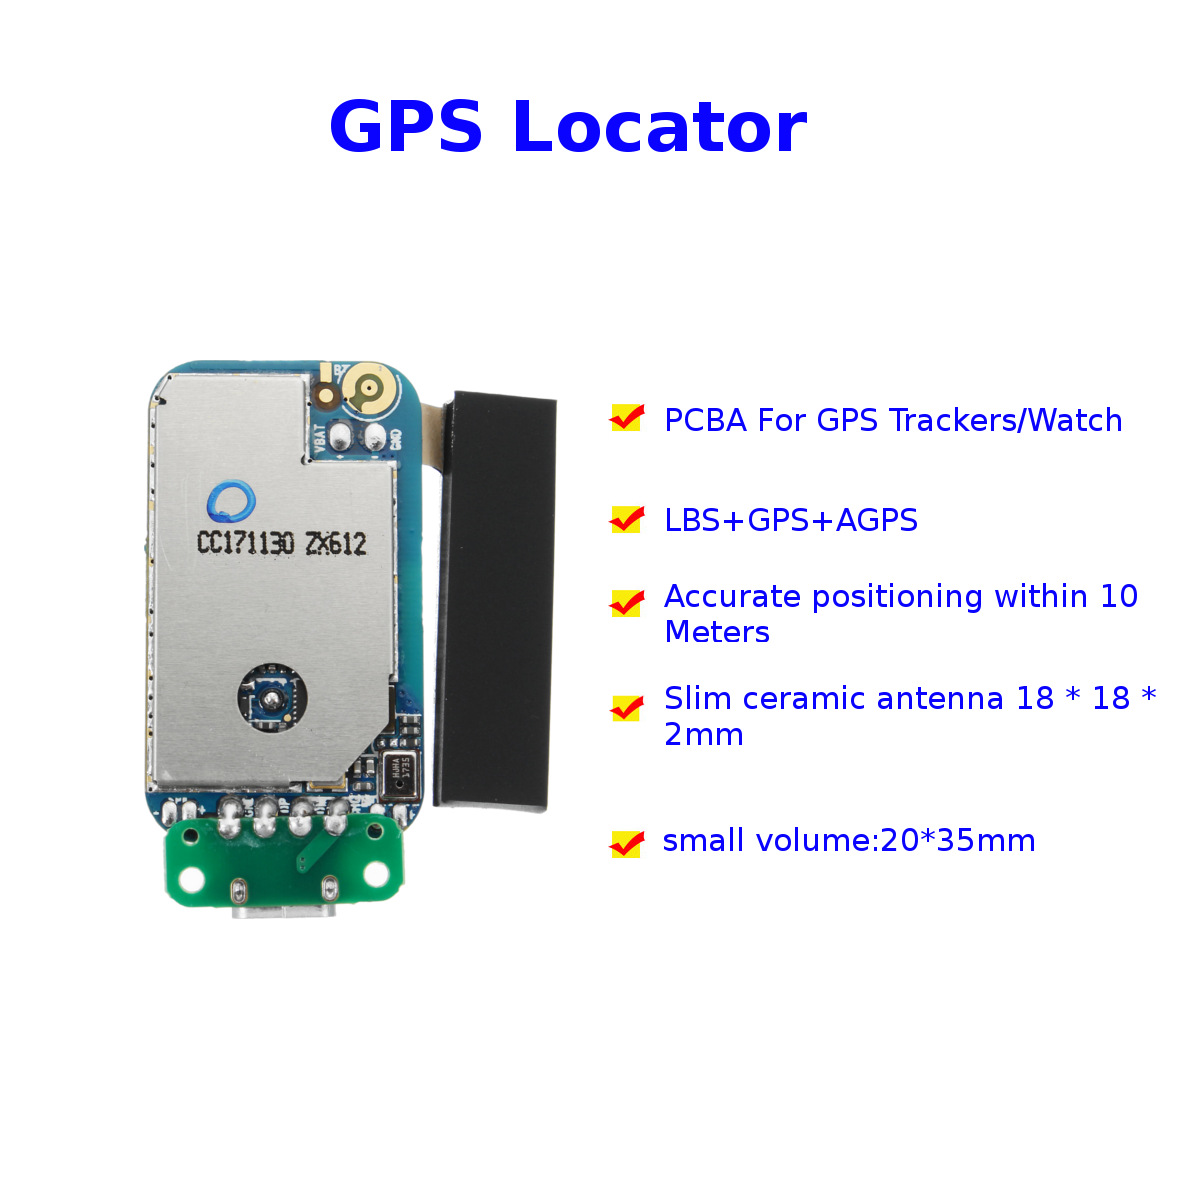 KROAK Mini GPS Tracker Positioner Module GPS+AGPS+LBS Multiple Locator SOS  Alarm Web APP Tracking High Integration PCBA For Kids Children Pets Car